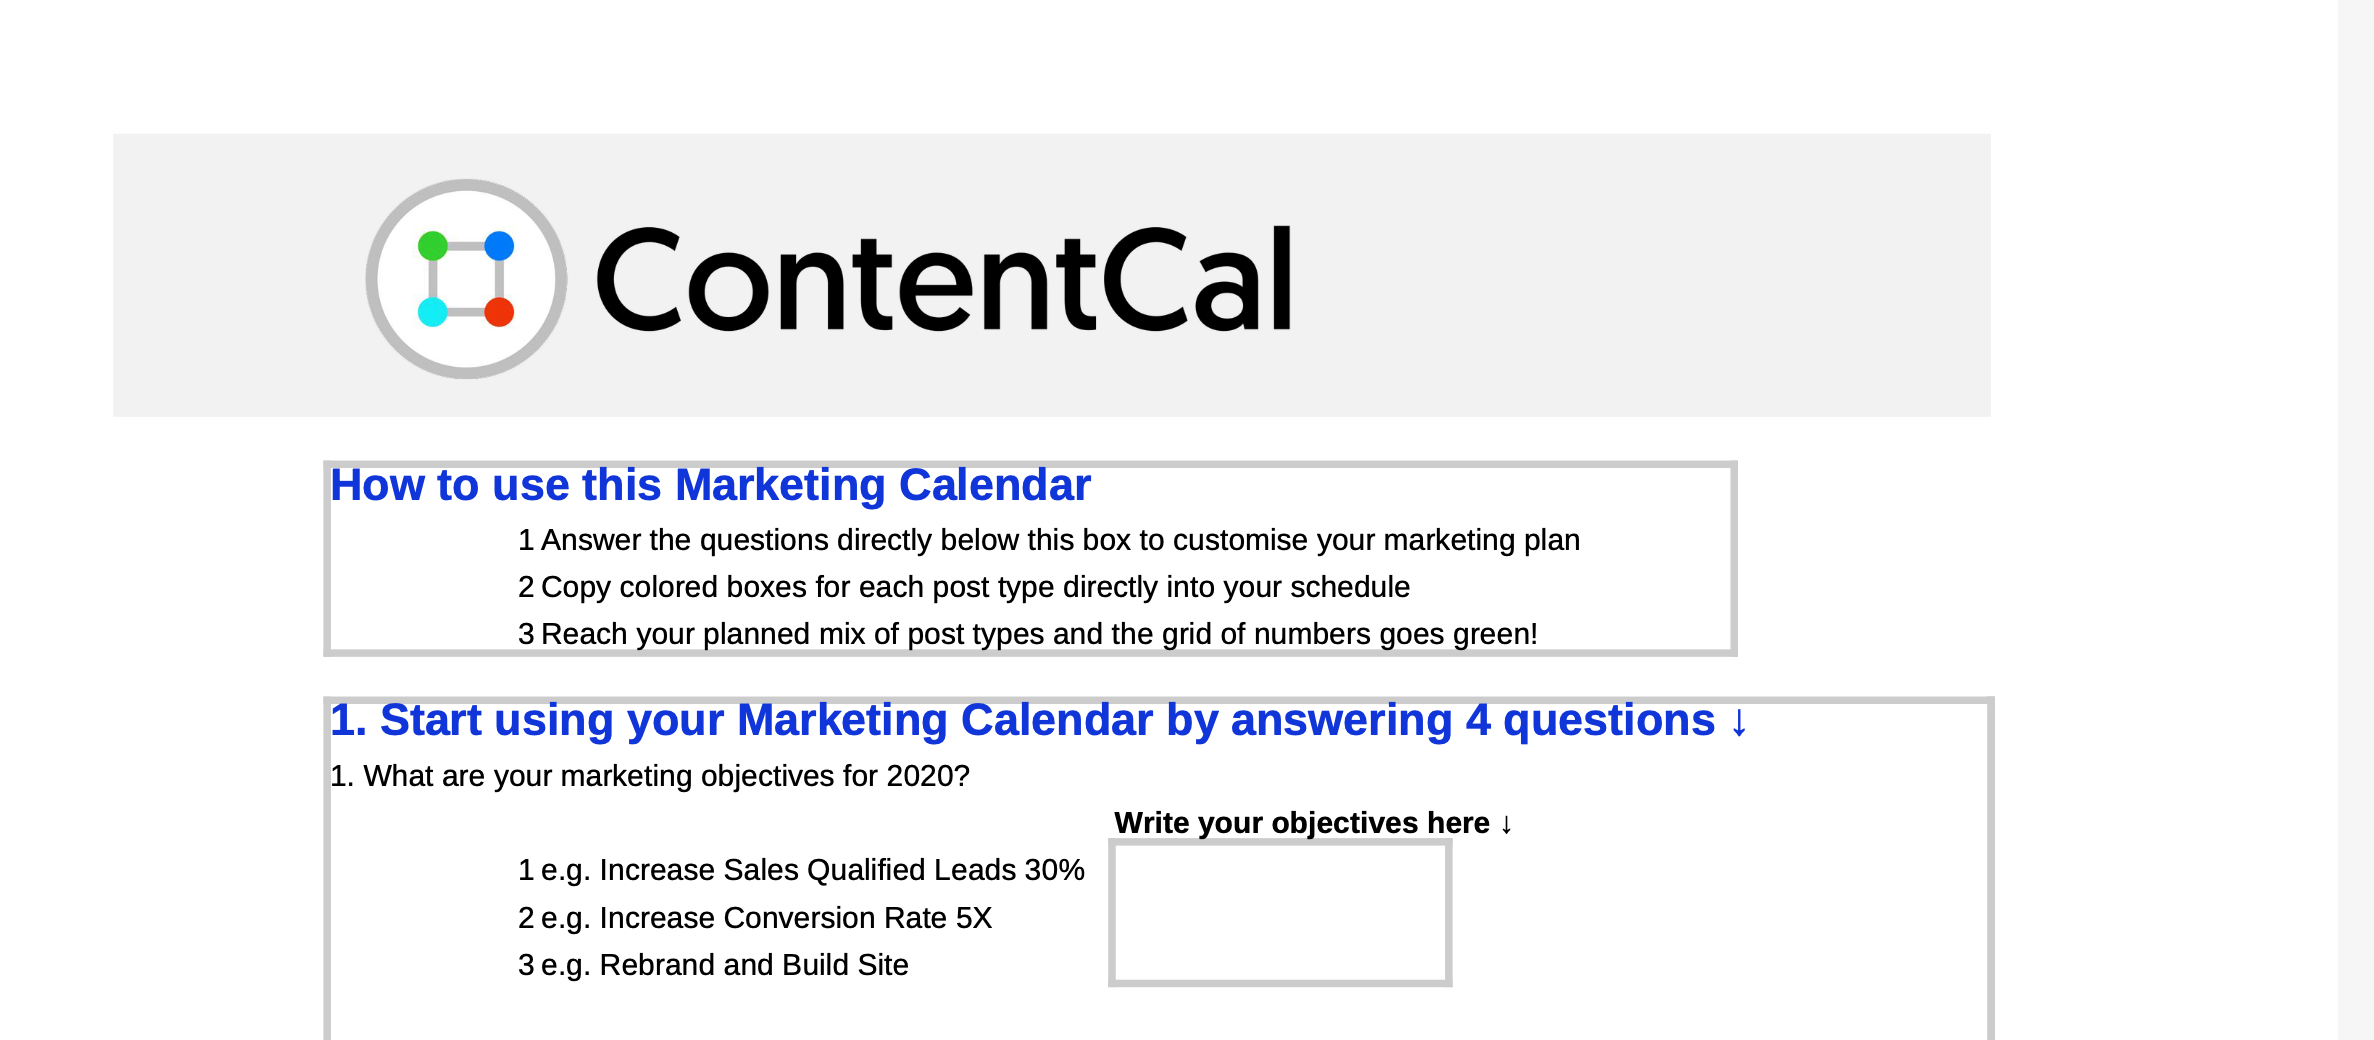 ContentCal's content marketing template